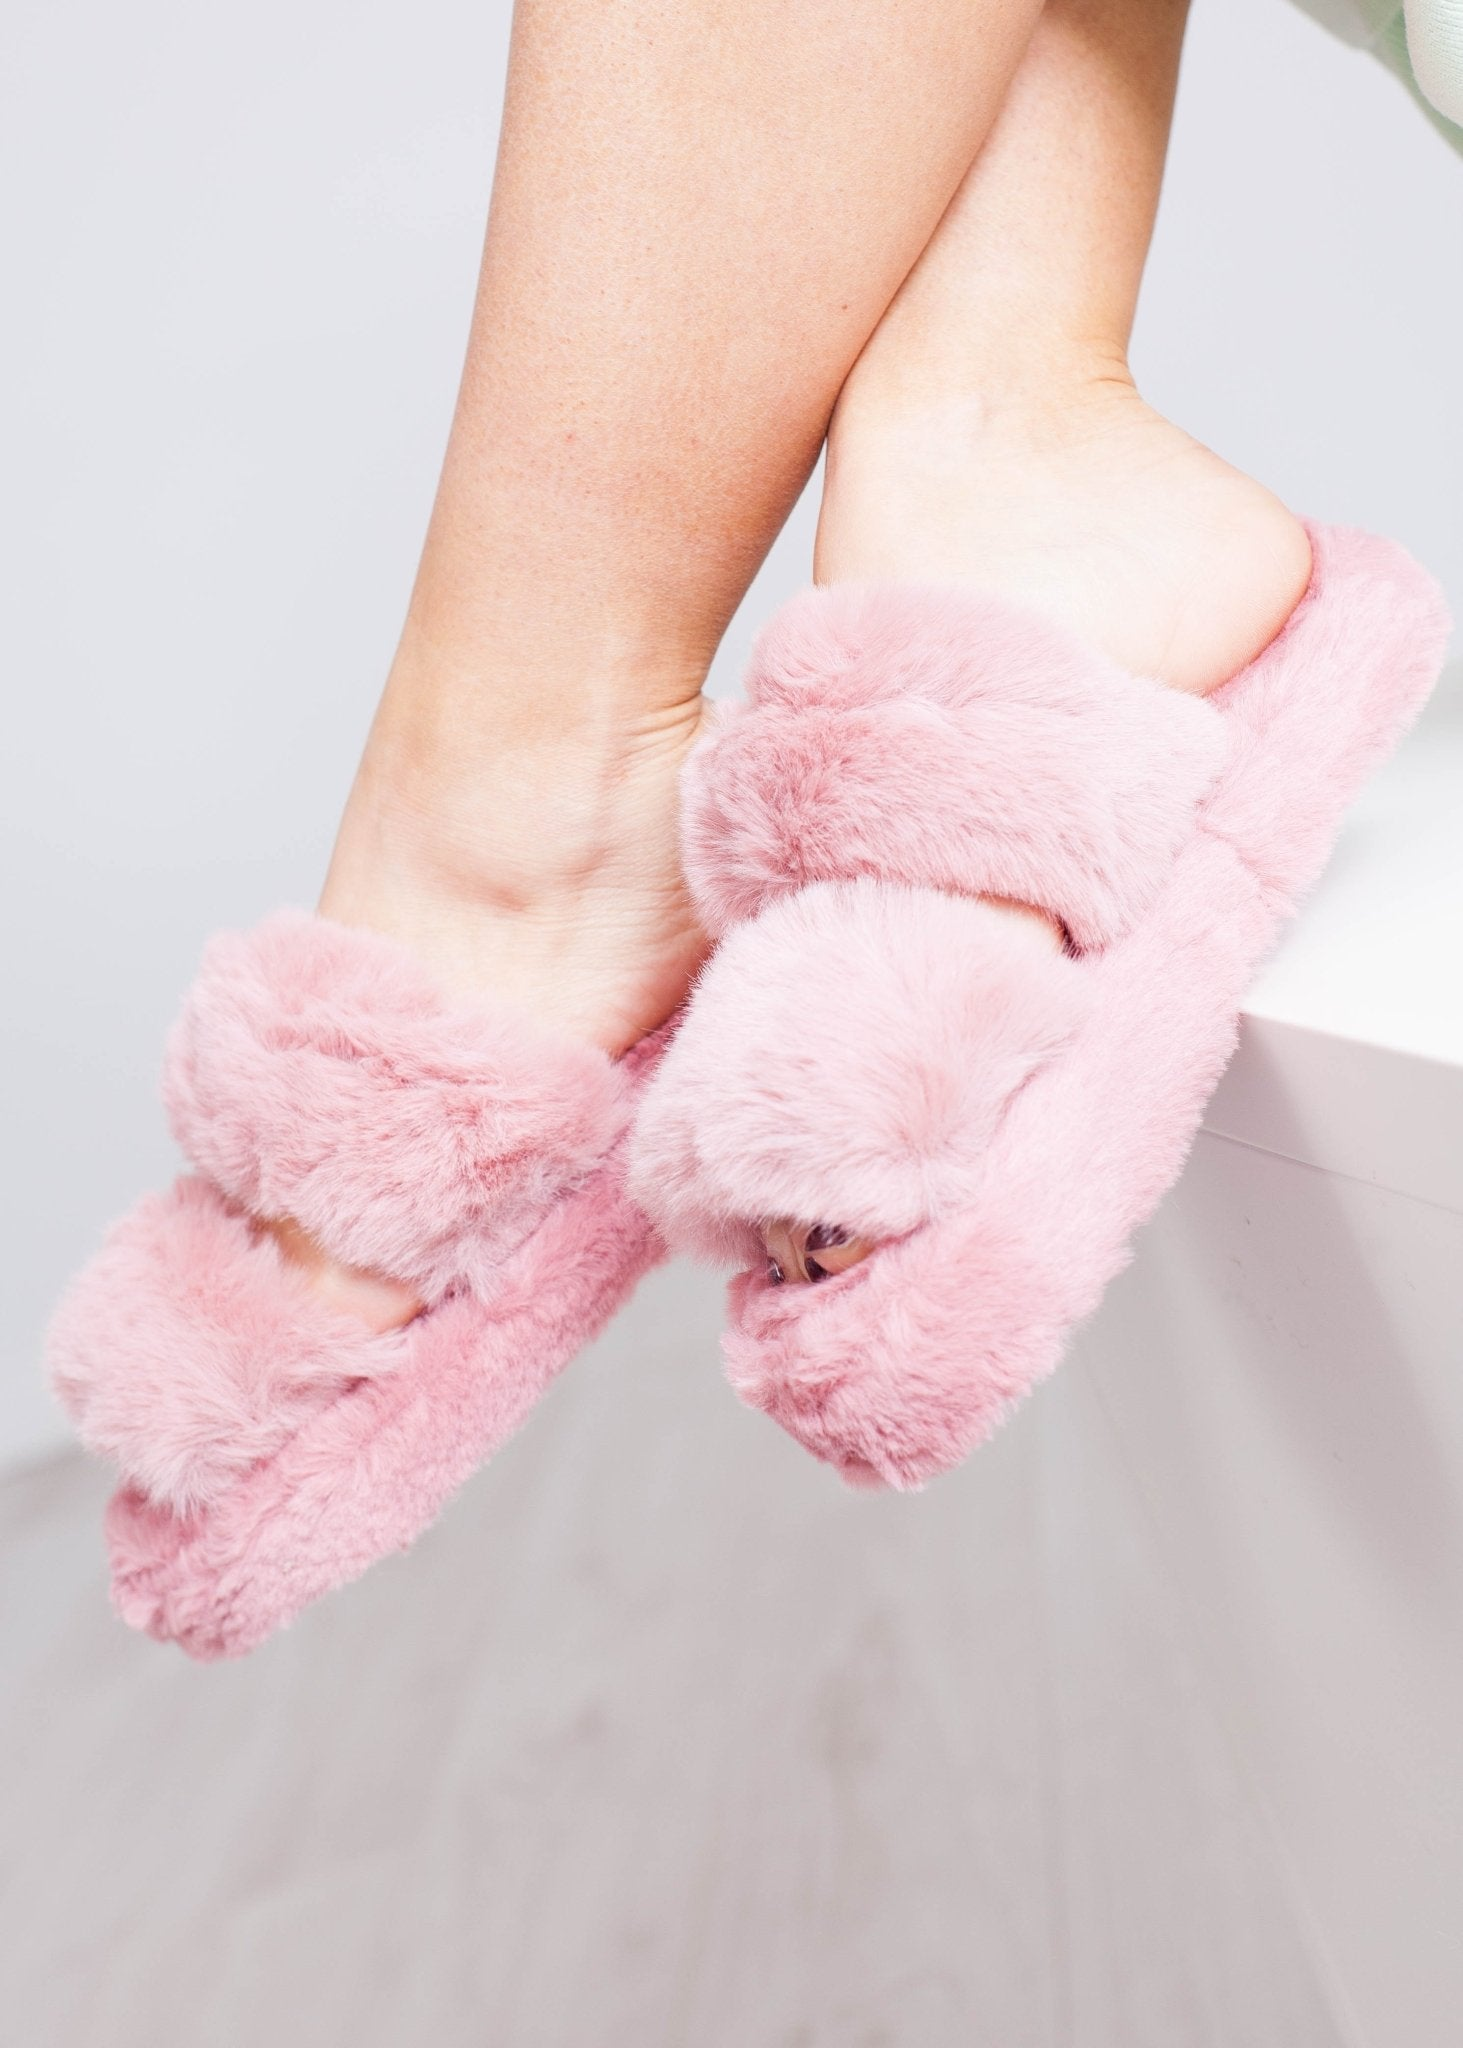 Cathy Fluffy Slippers In Pink - The Walk in Wardrobe